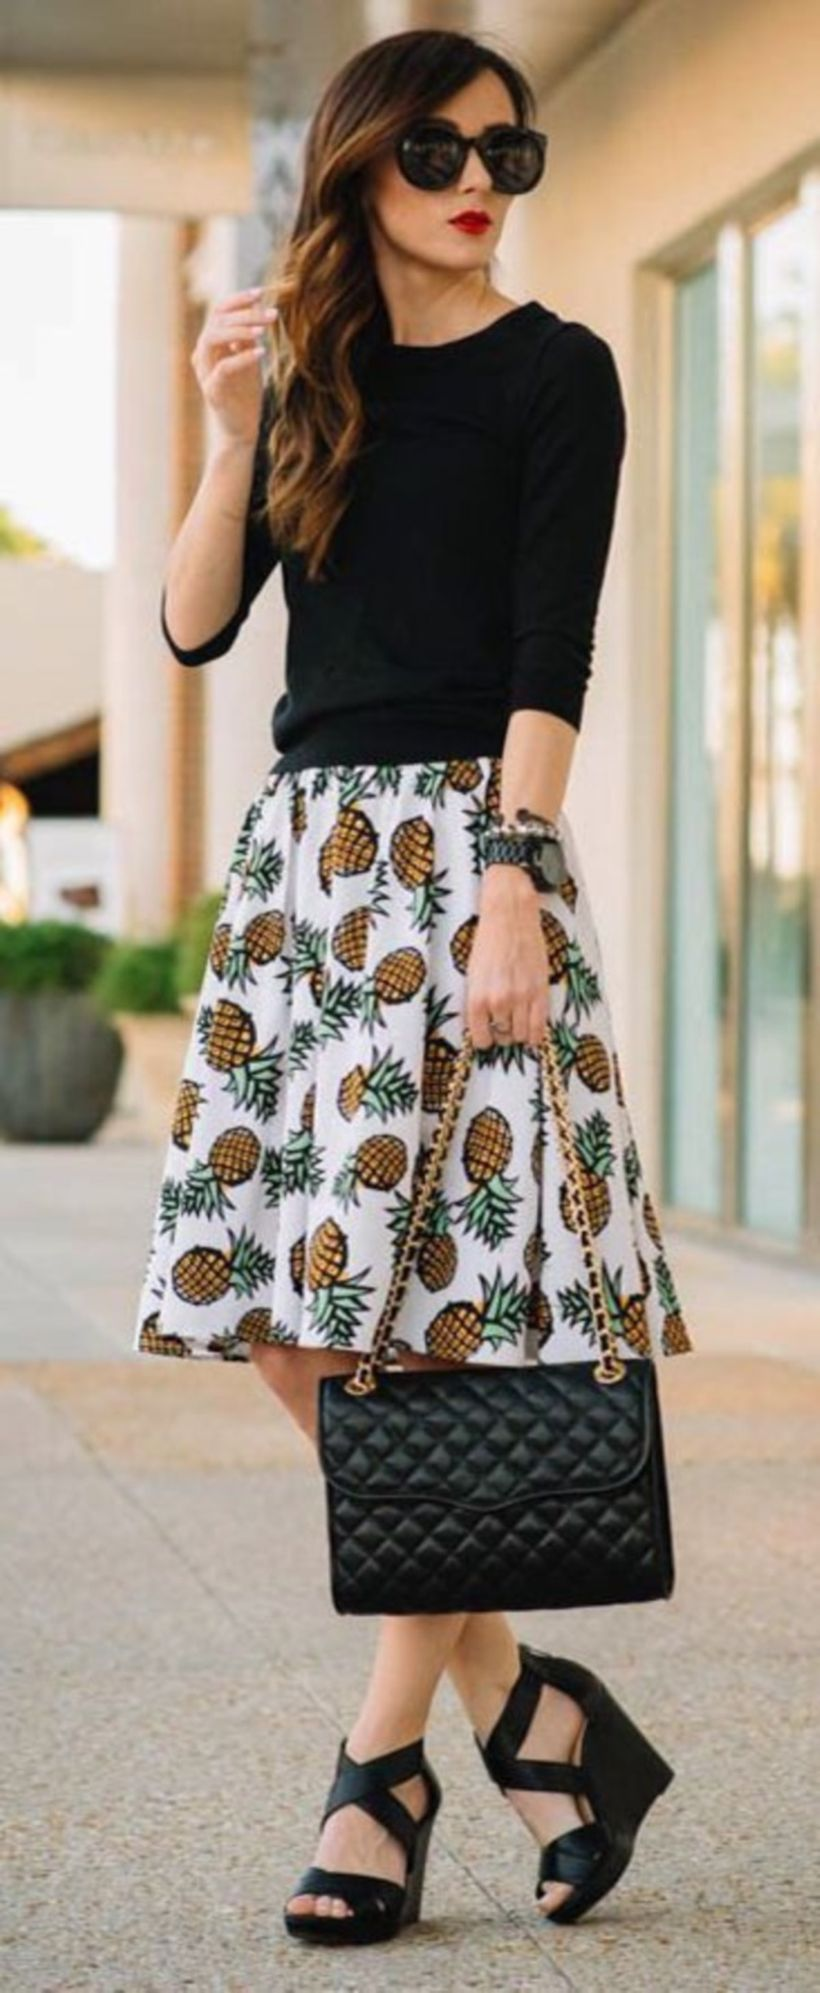 Fashionable skirt outfits ideas that you must try 45